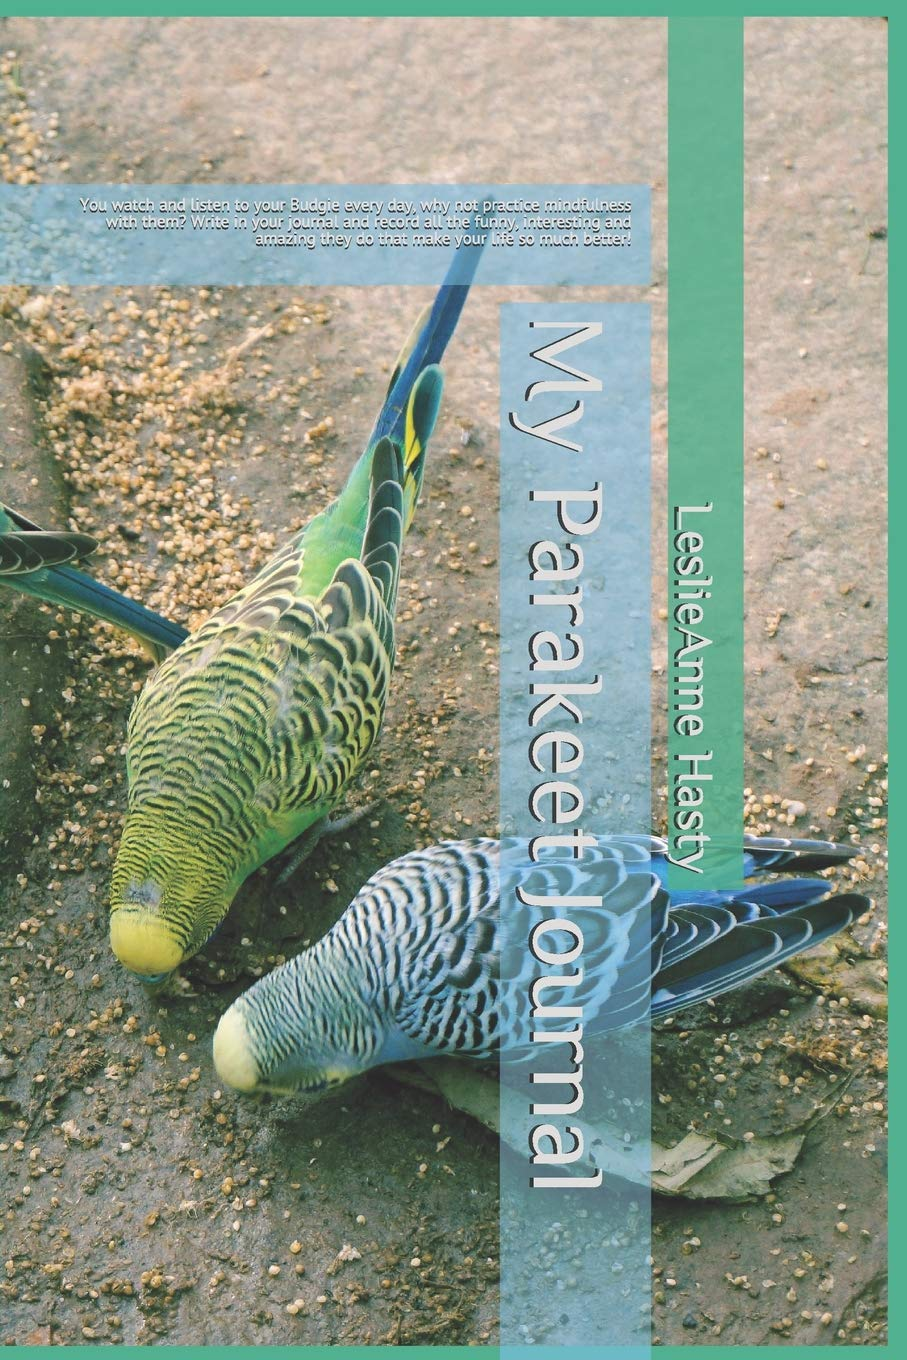 My Parakeet Journal: You watch and listen to your Budgie